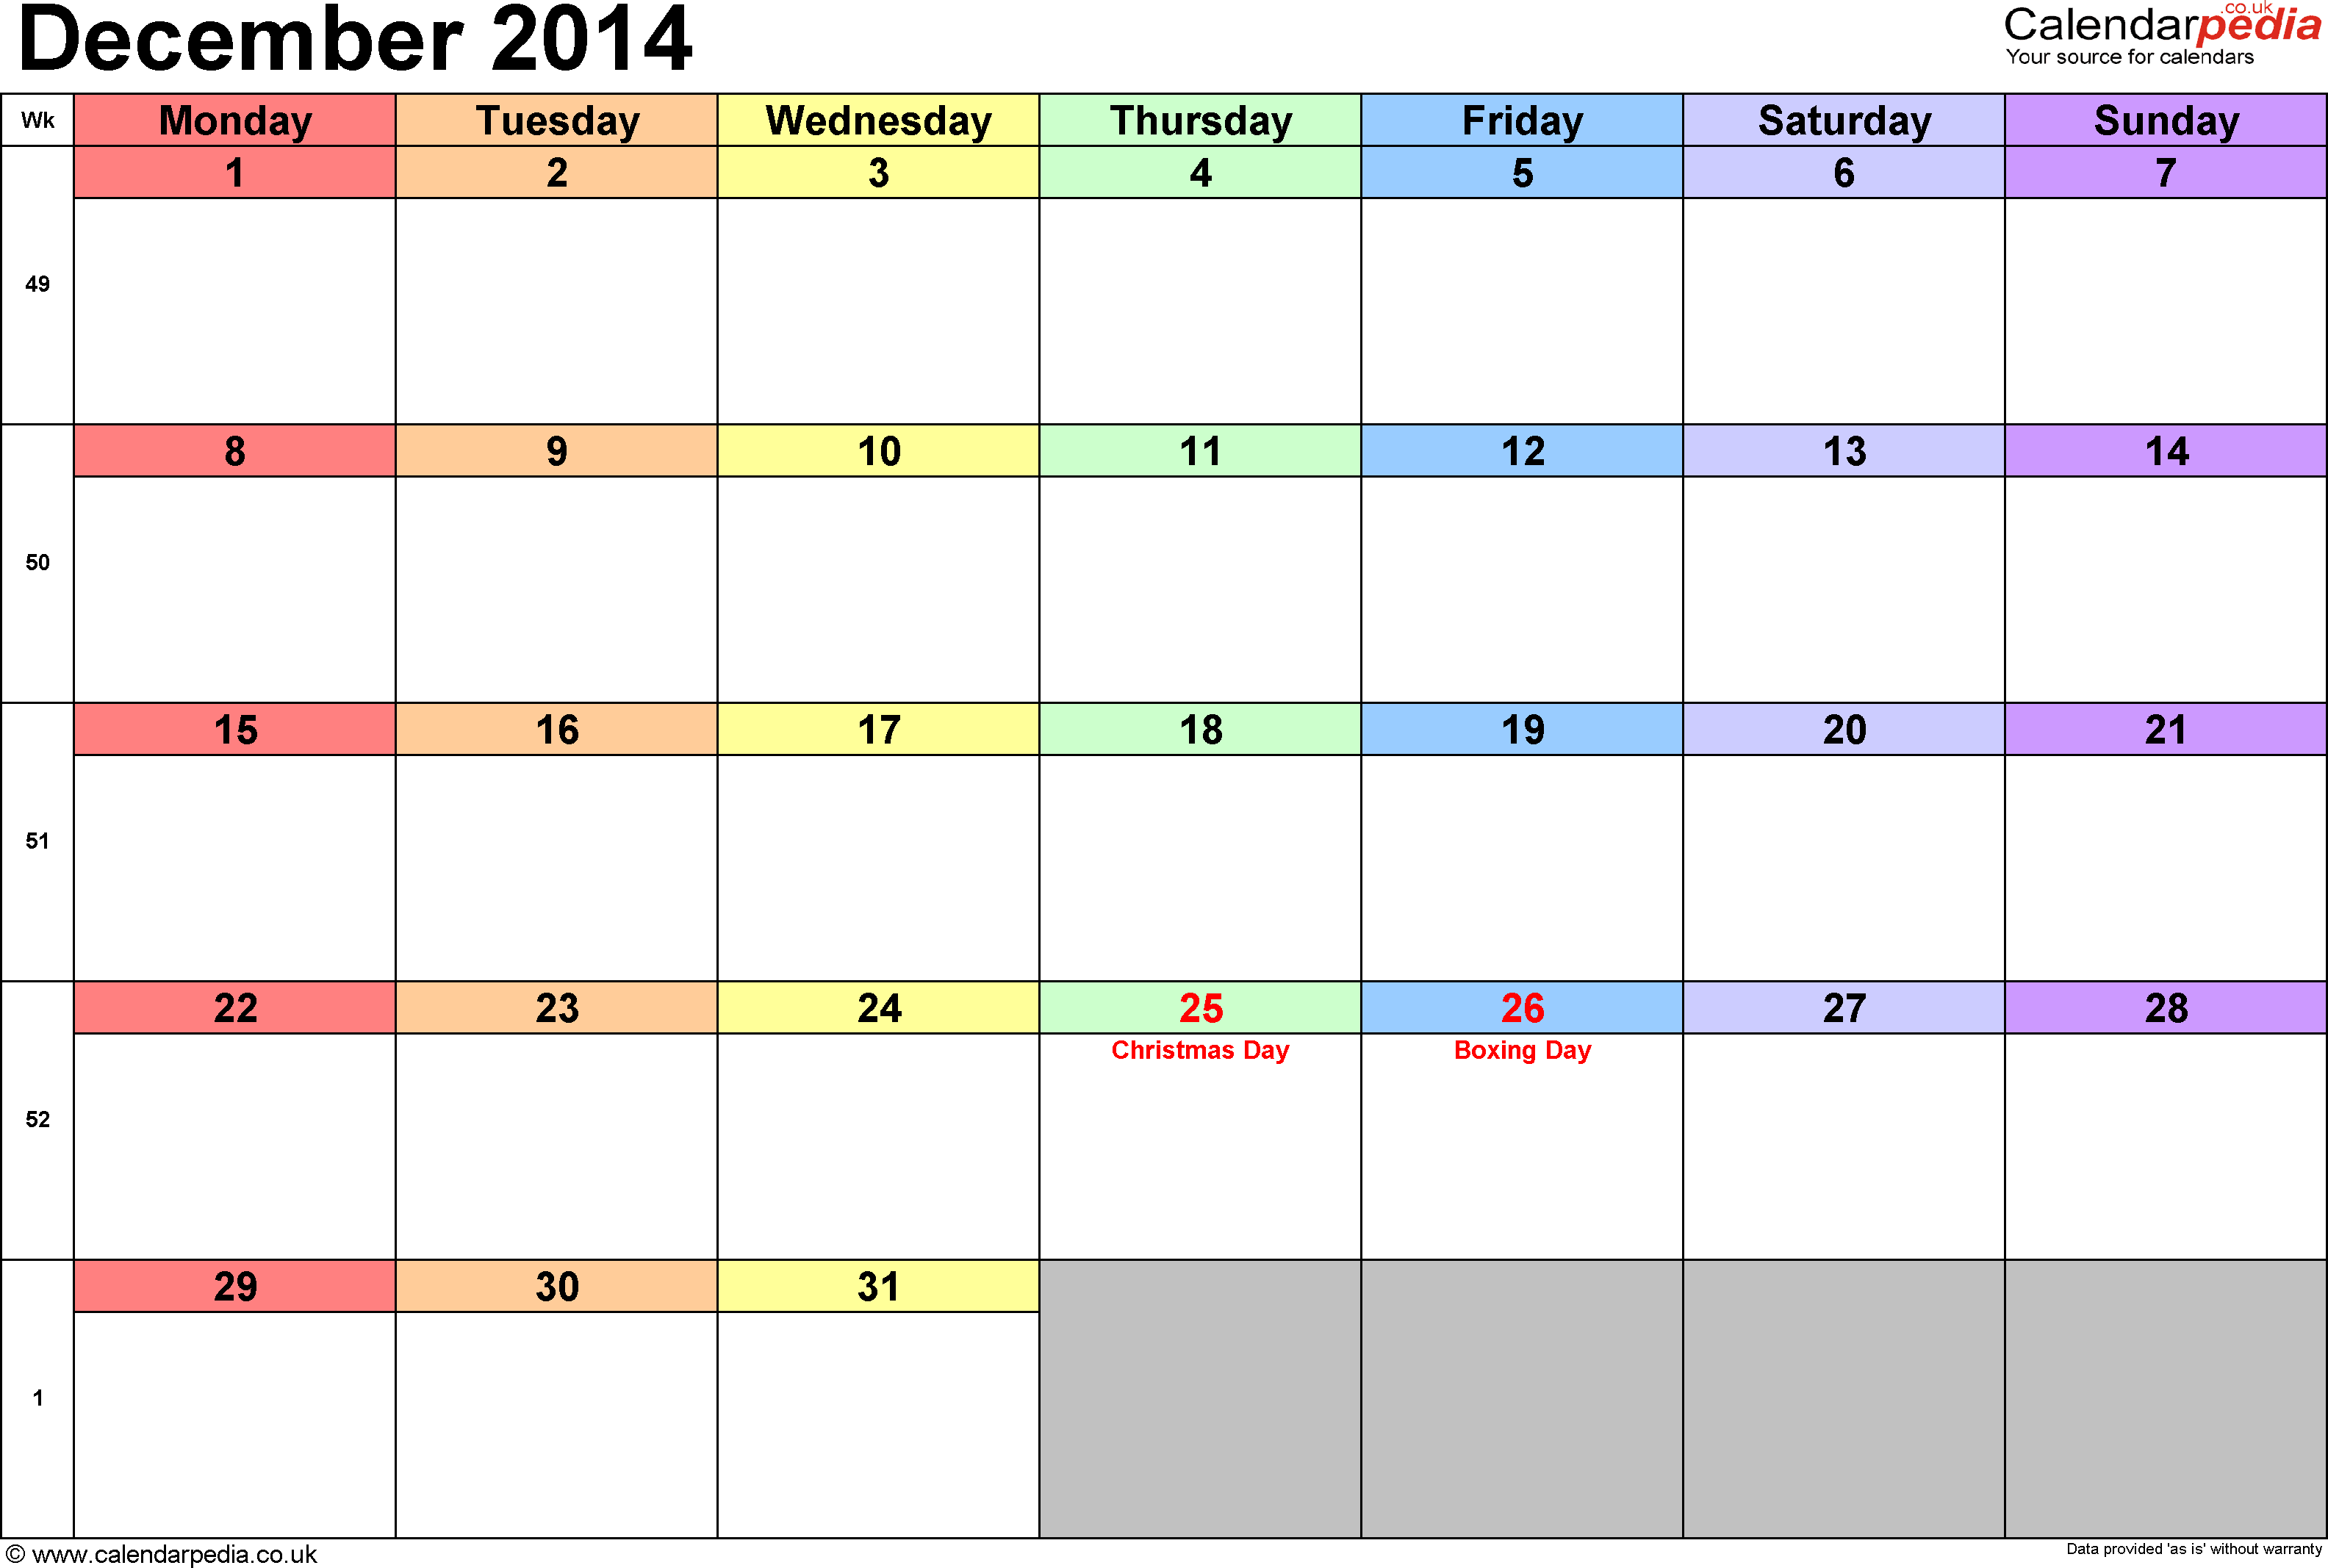 Calendar December 2014, landscape orientation, 1 page, with UK bank holidays and week numbers